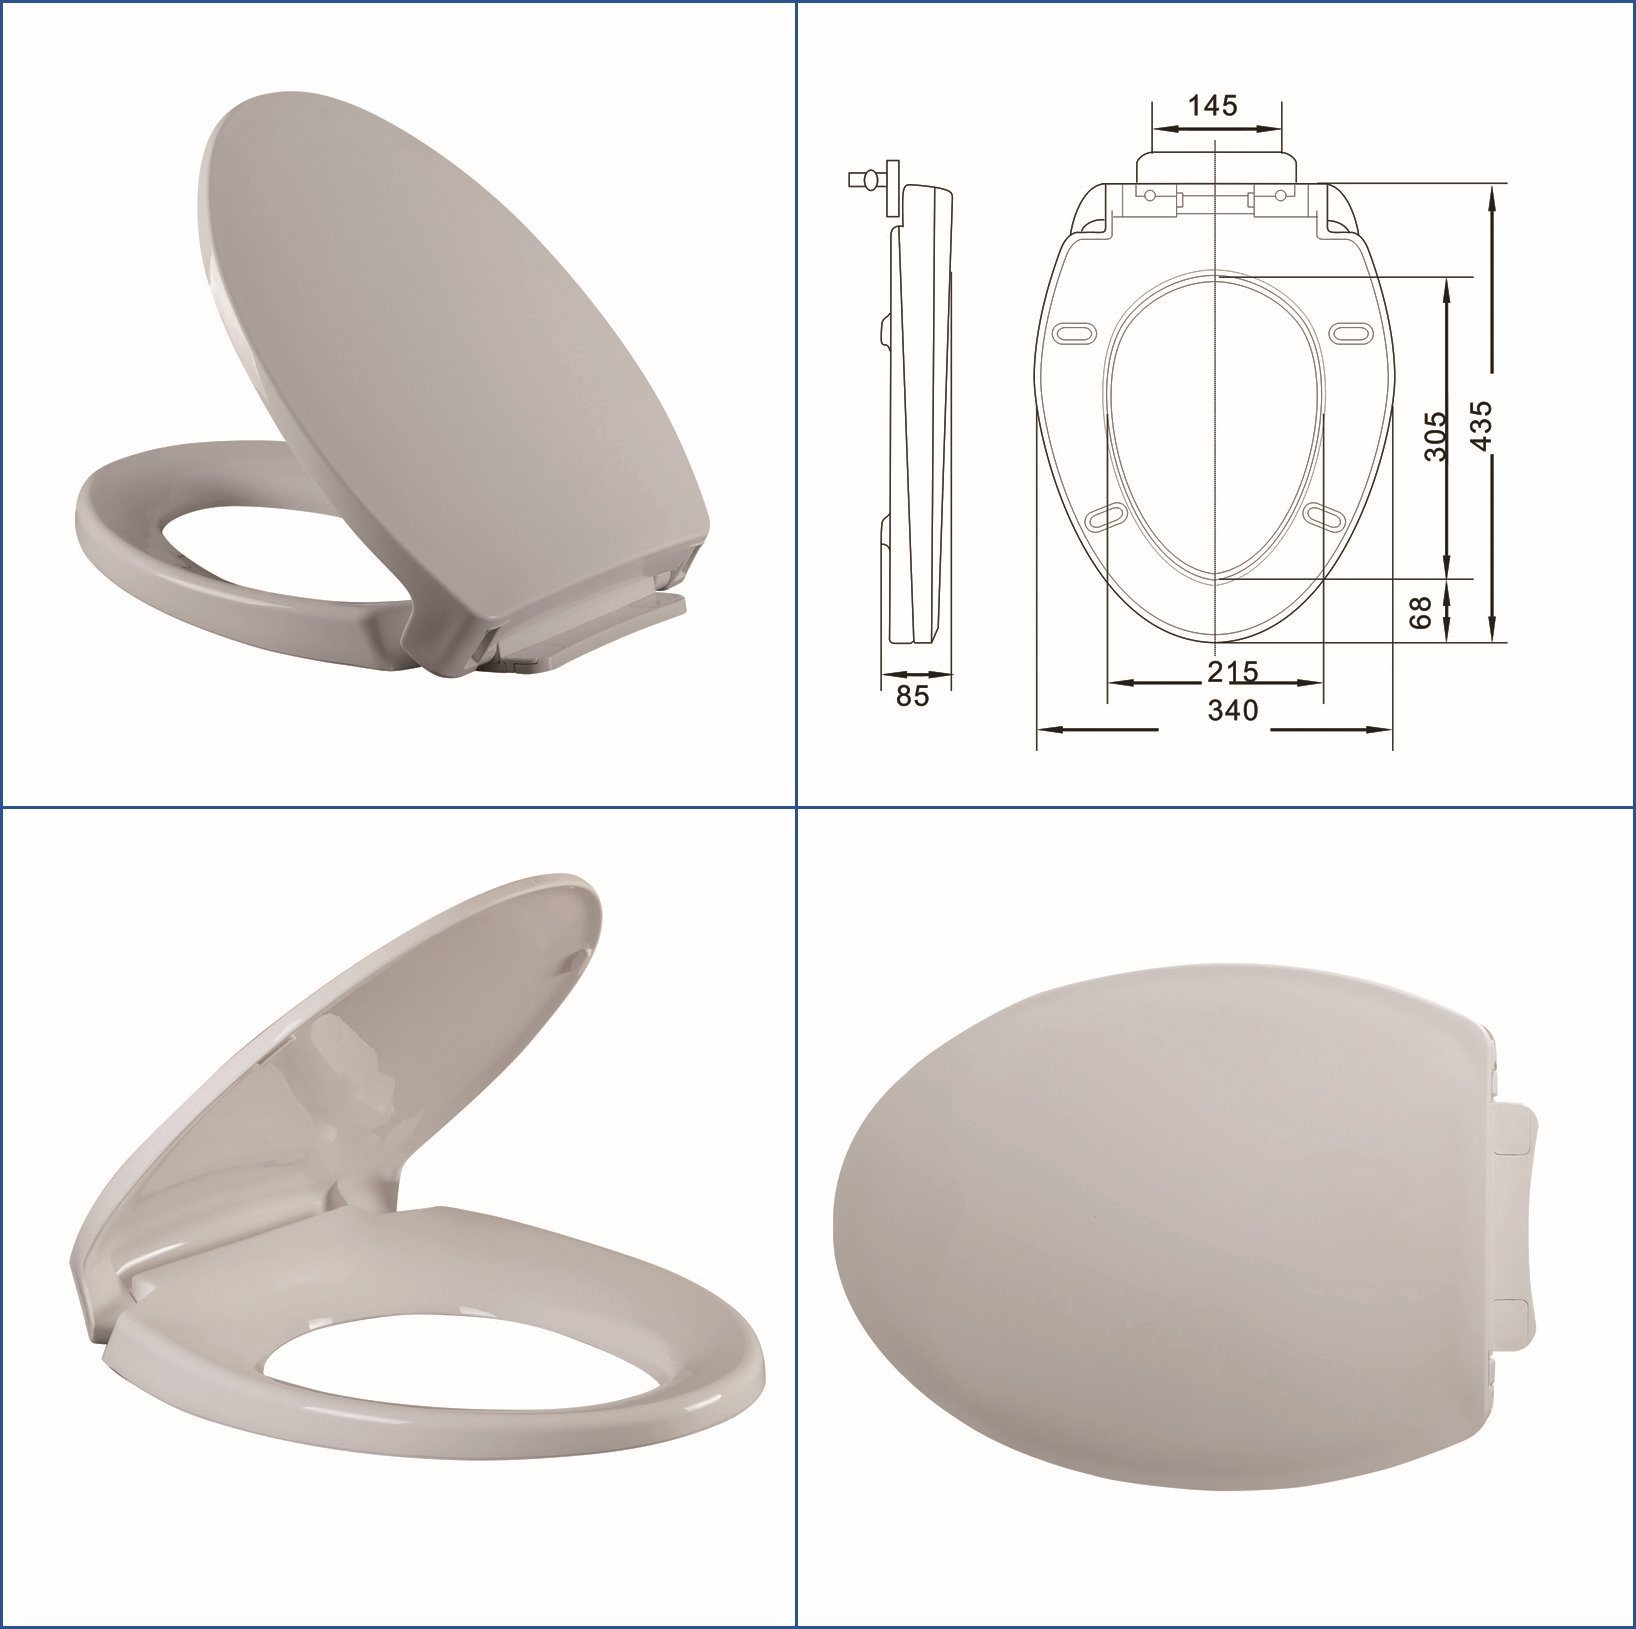 China Toto Size Toilet Seat Heavy End Photos & Pictures - Made-in ...